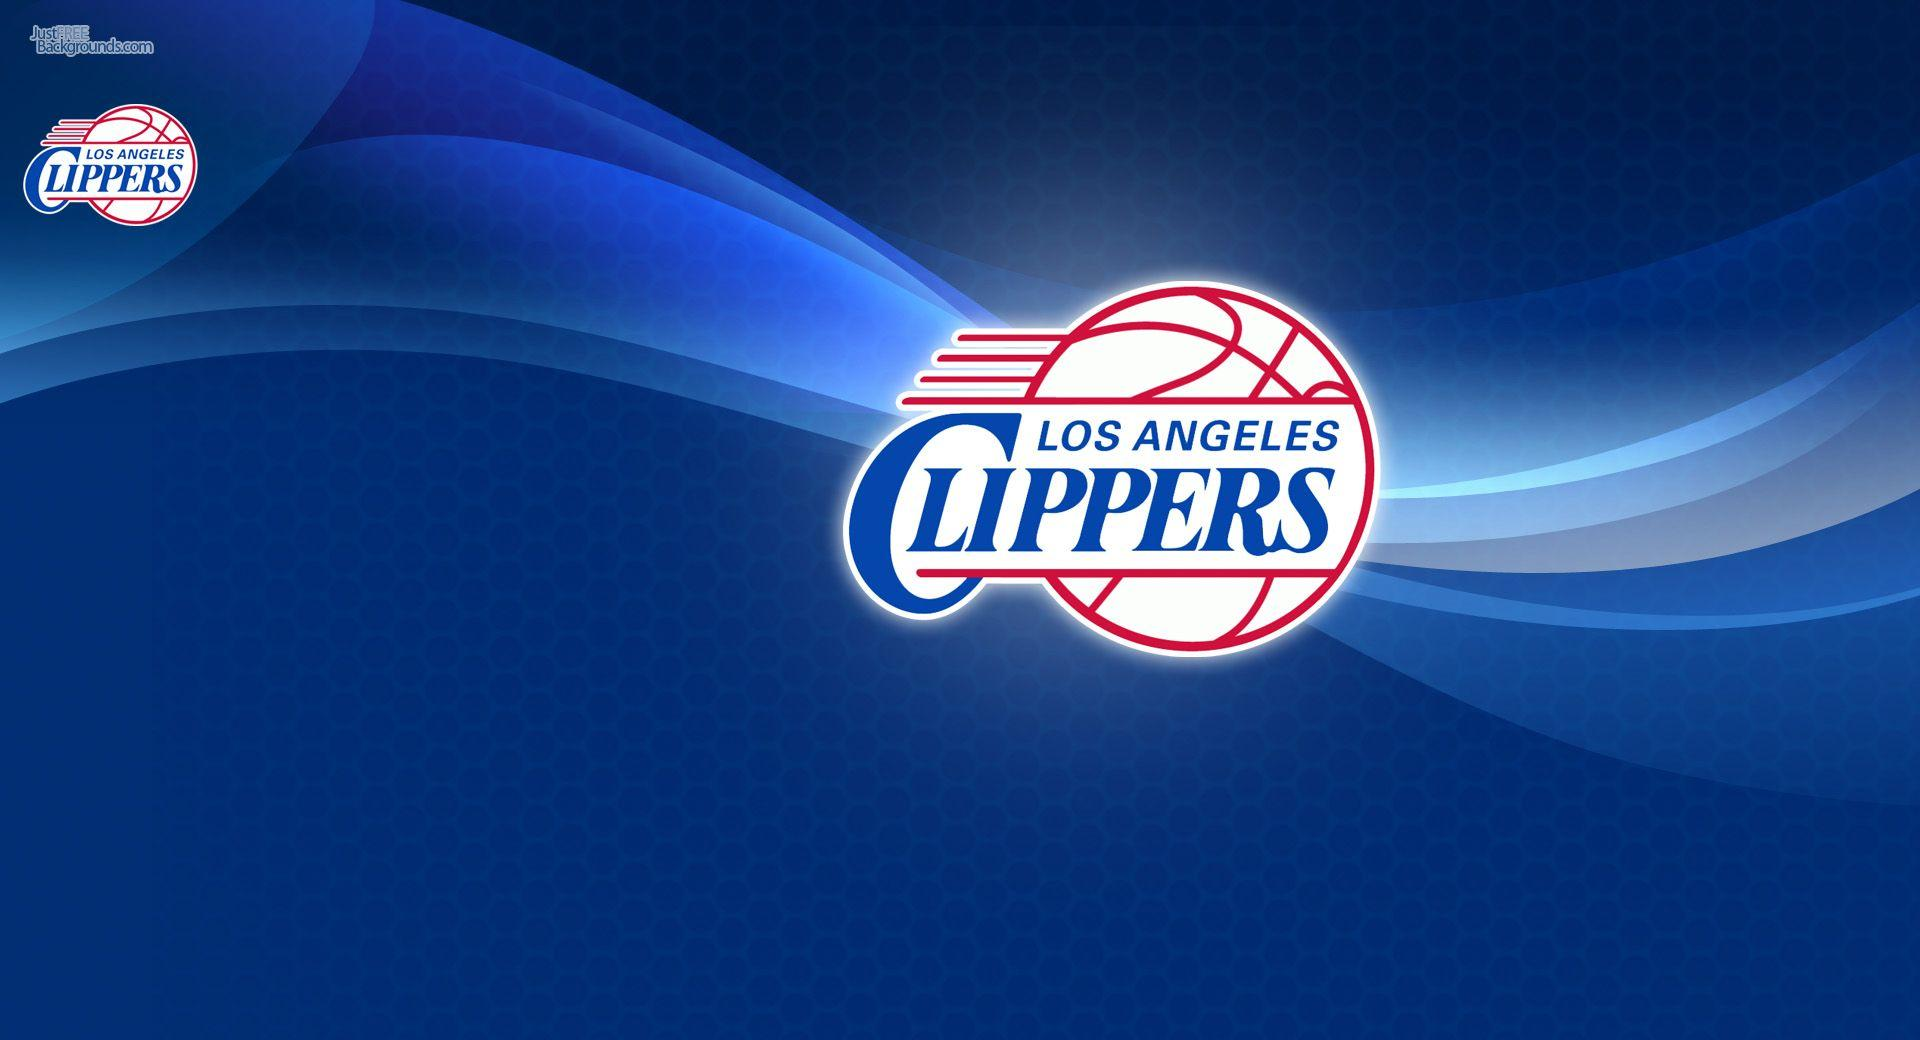 Bcierron: Los Angeles Clippers Logo Nba Wallpaper Images